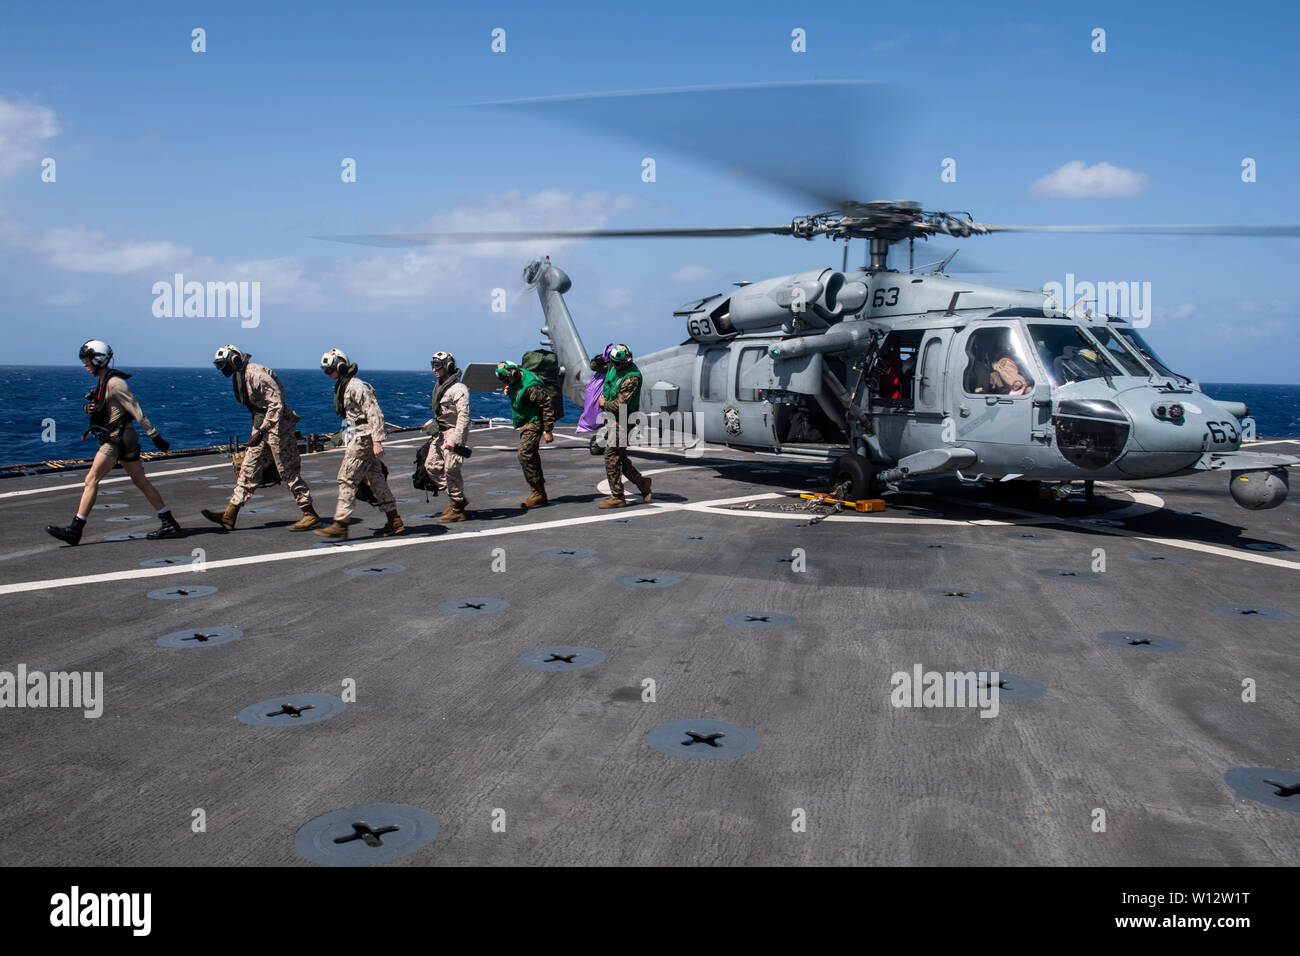 190624-N-HD110-0112  INDIAN OCEAN (June 24, 2019) U.S. Marines with the 11th Marine Expeditionary Unit exit an MH-60S Sea Hawk helicopter, assigned to Helicopter Sea Combat Squadron (HSC) 21, on the flight deck of the amphibious dock landing ship USS Harpers Ferry (LSD 49). Harpers Ferry is part of the Boxer Amphibious Ready Group and 11th MEU and is deployed to the U.S. 5th Fleet area of operations in support of naval operations to ensure maritime stability and security in the Central Region, connecting the Mediterranean and the Pacific through the western Indian Ocean and three strategic cho Stock Photo